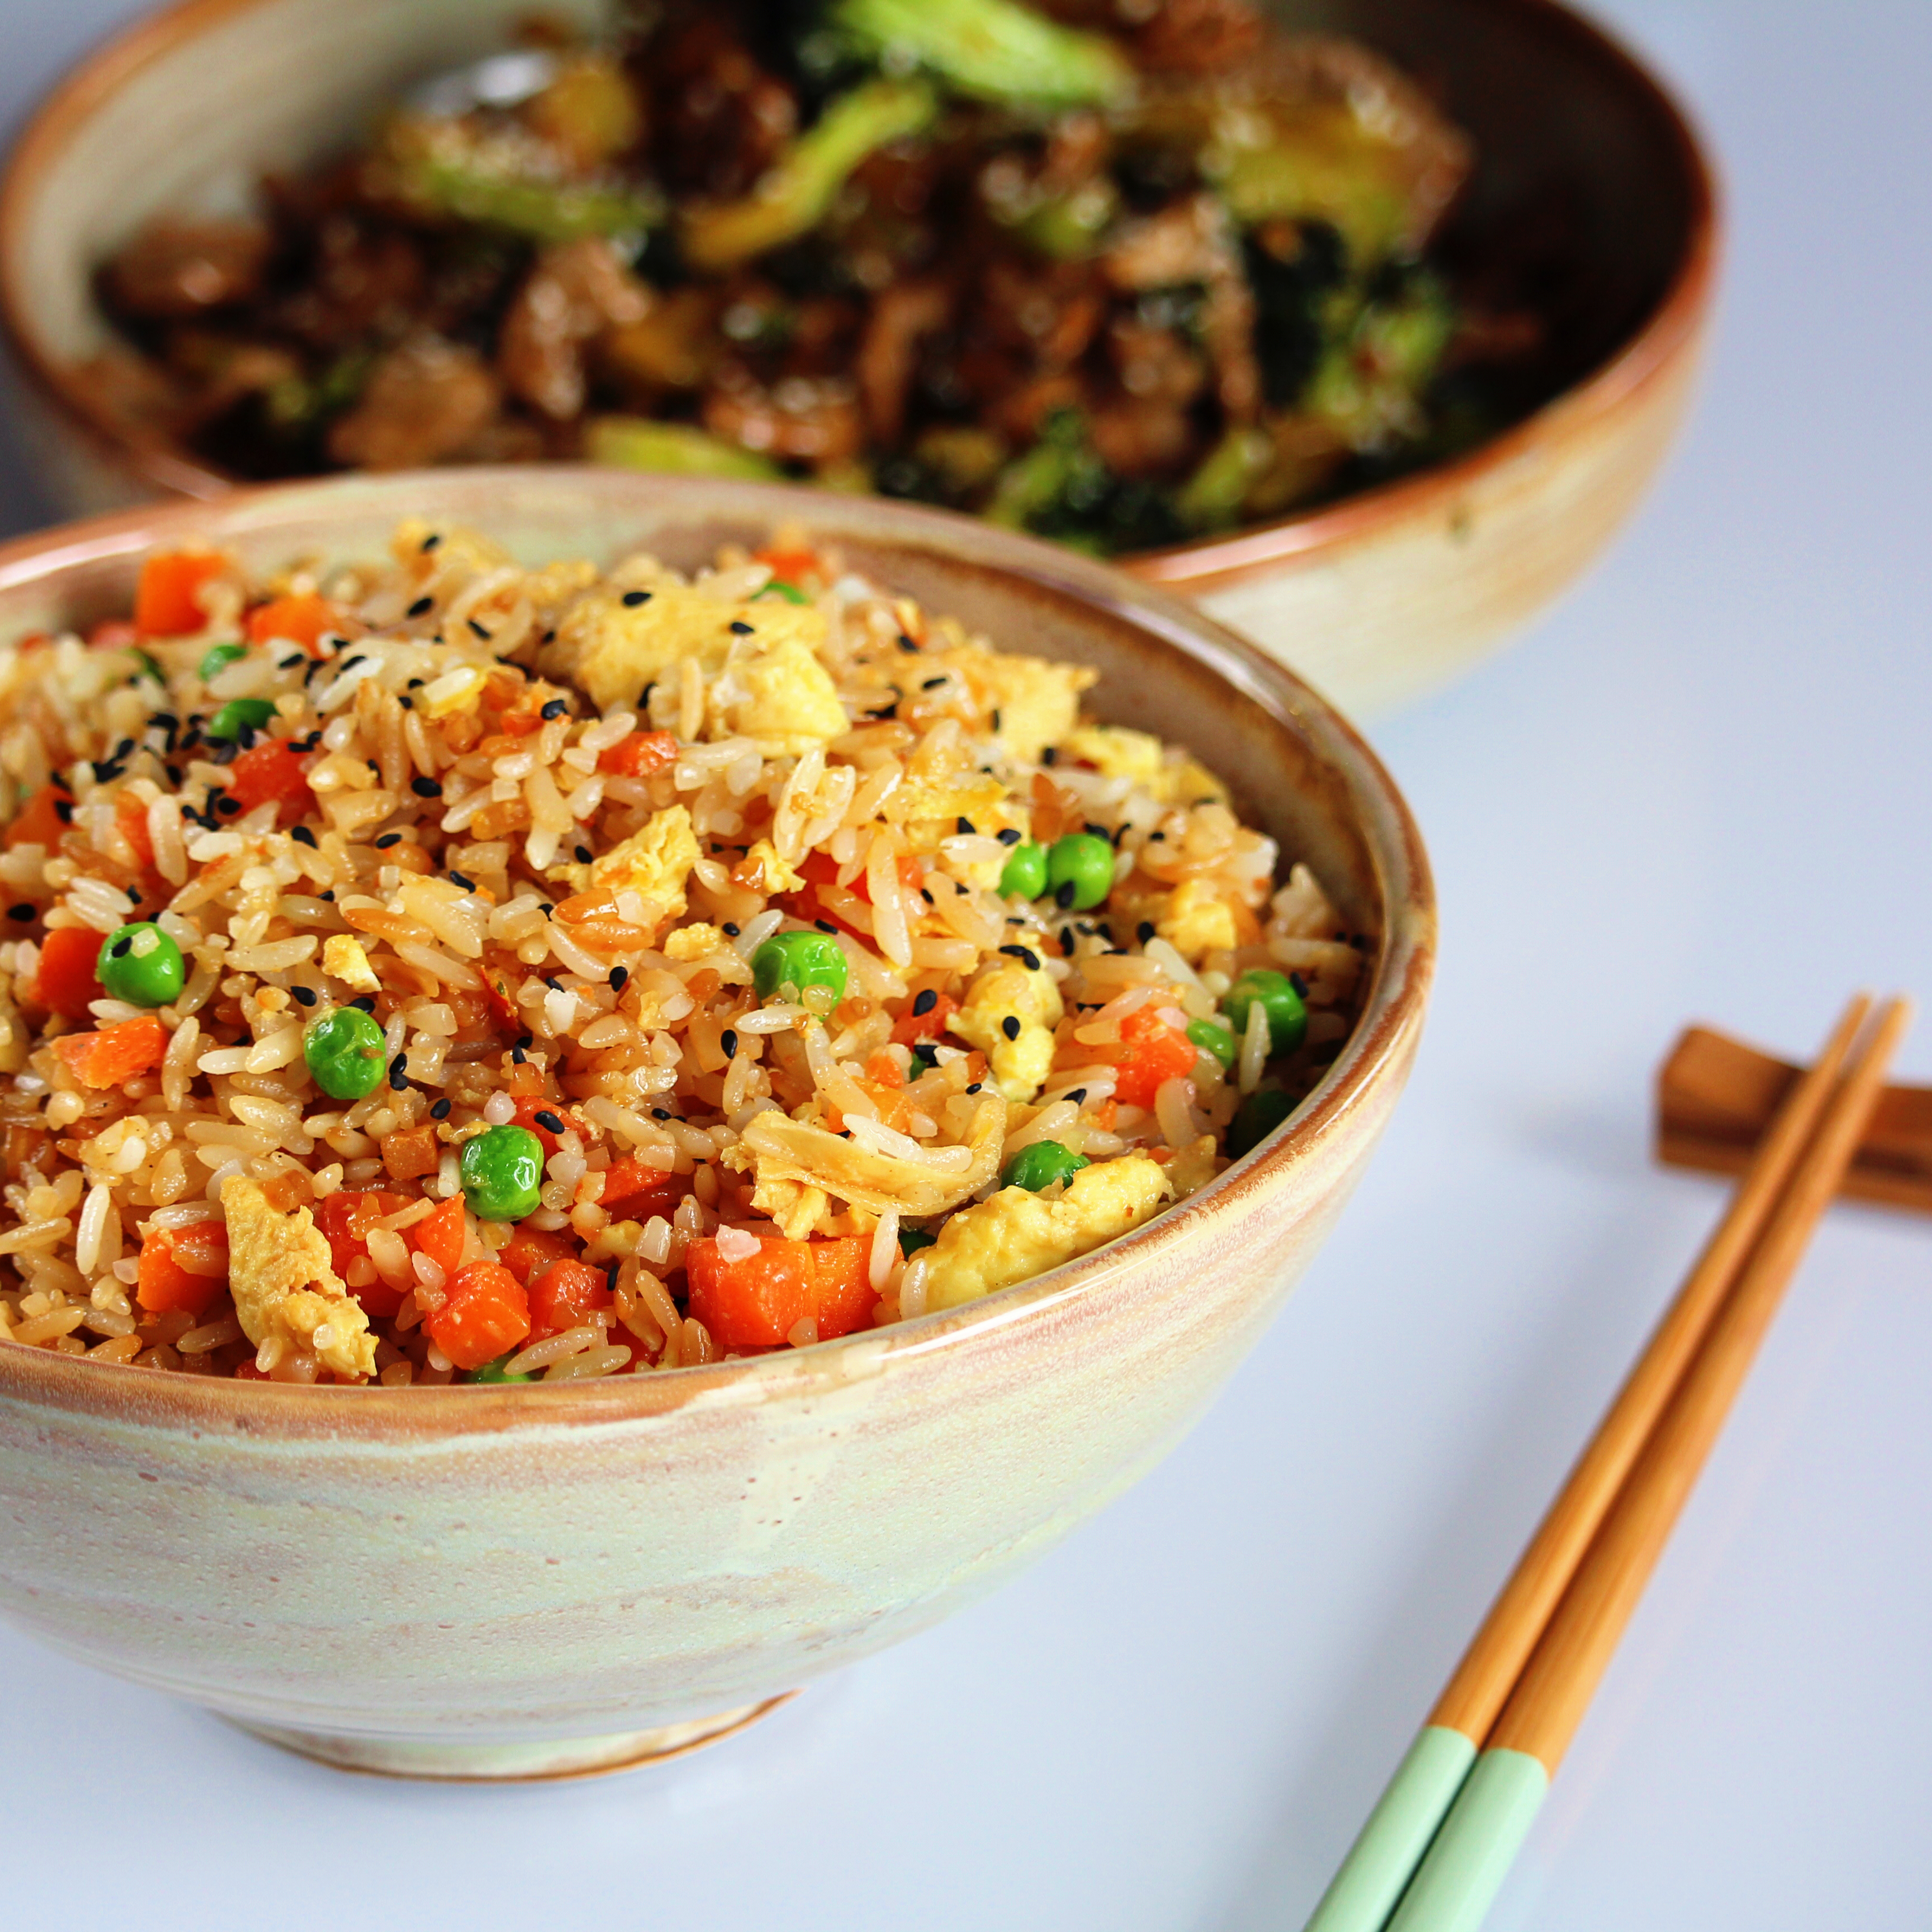 Take Out-Style Fried Rice